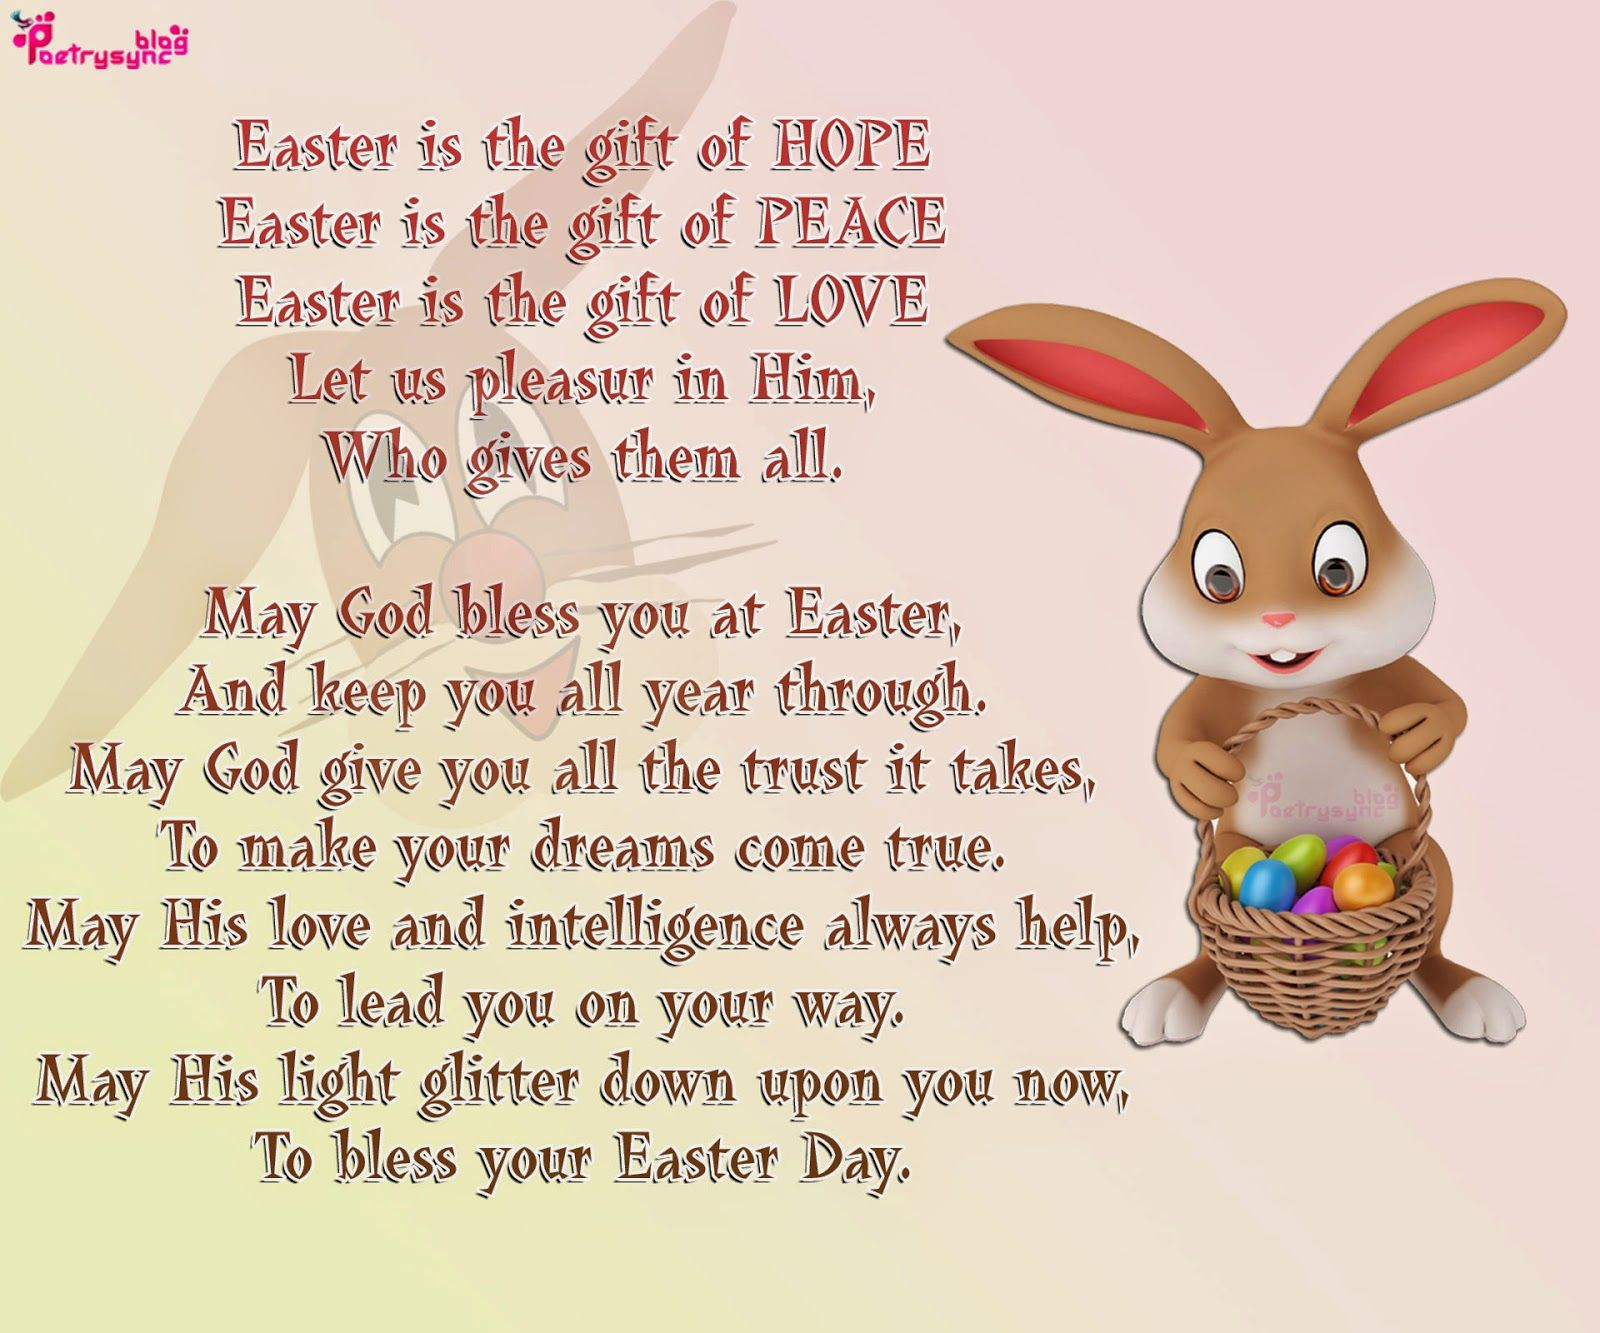 easter day poem image lovely bunny easter day poems pinterest